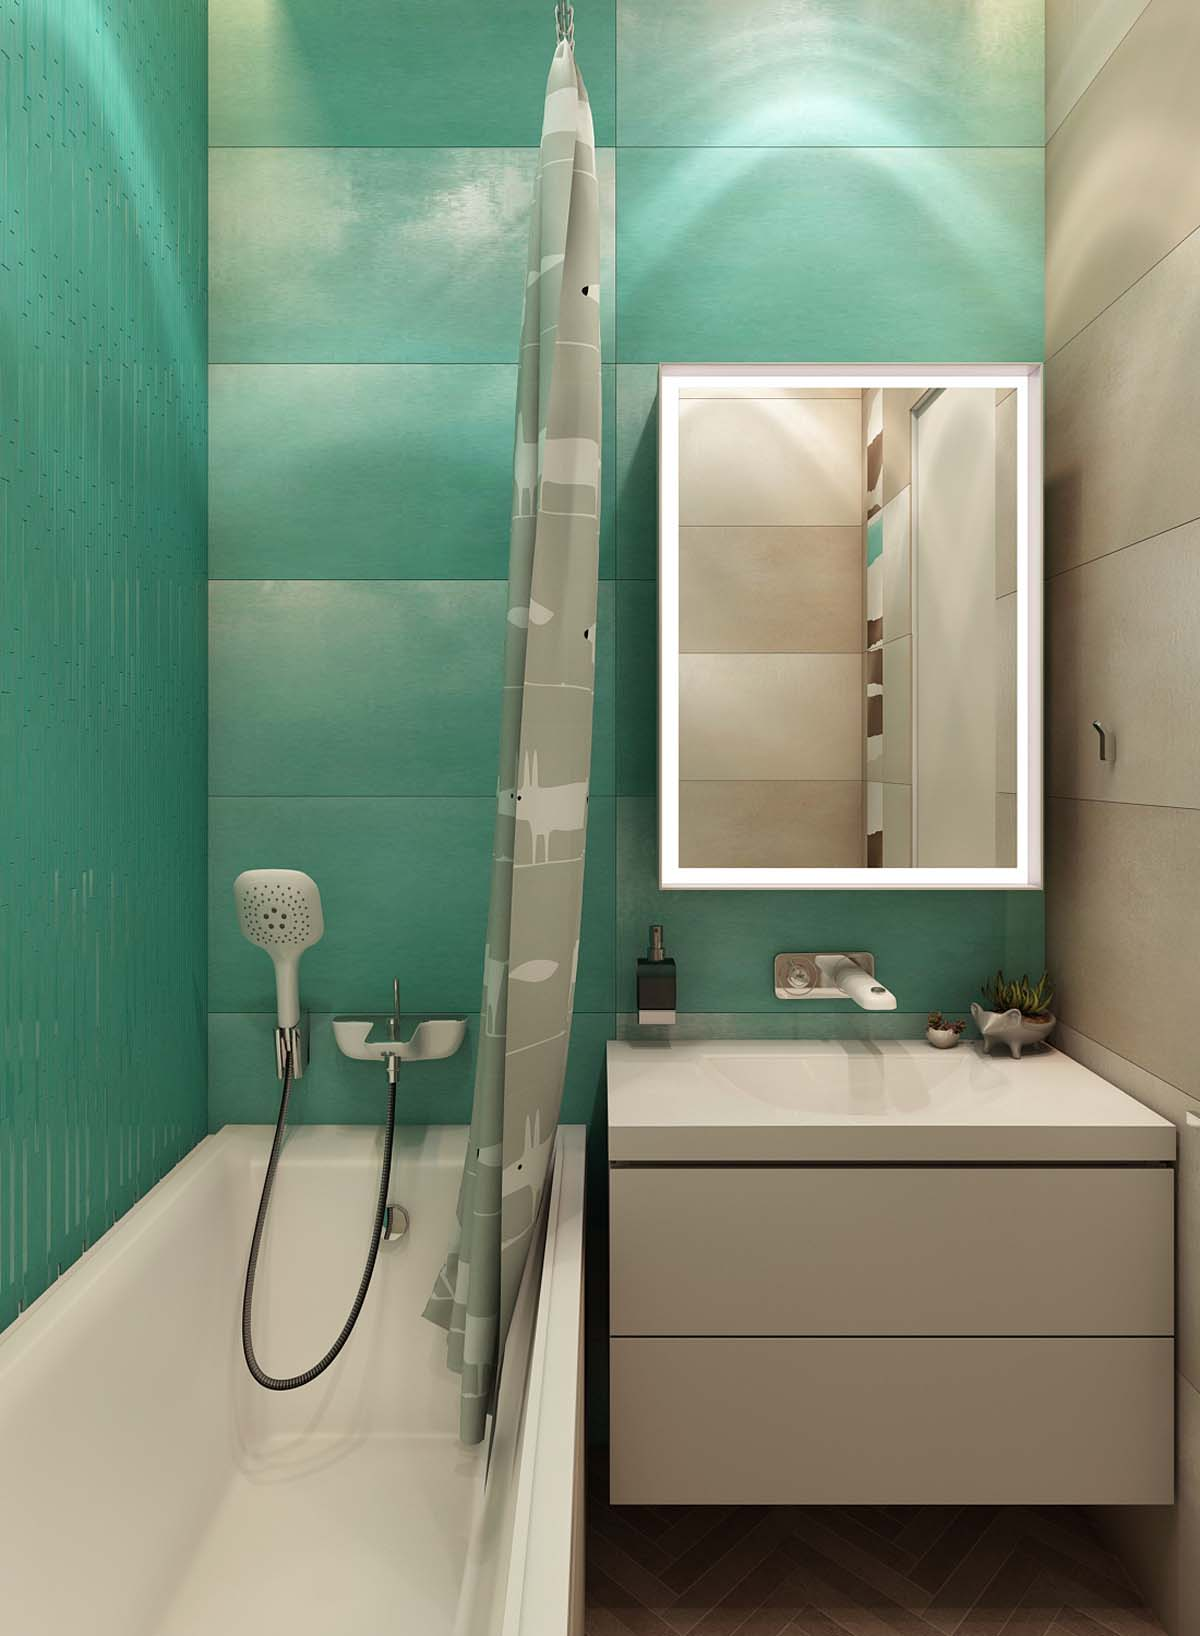 Bright Green Bathroom - A simple modern apartment in moscow